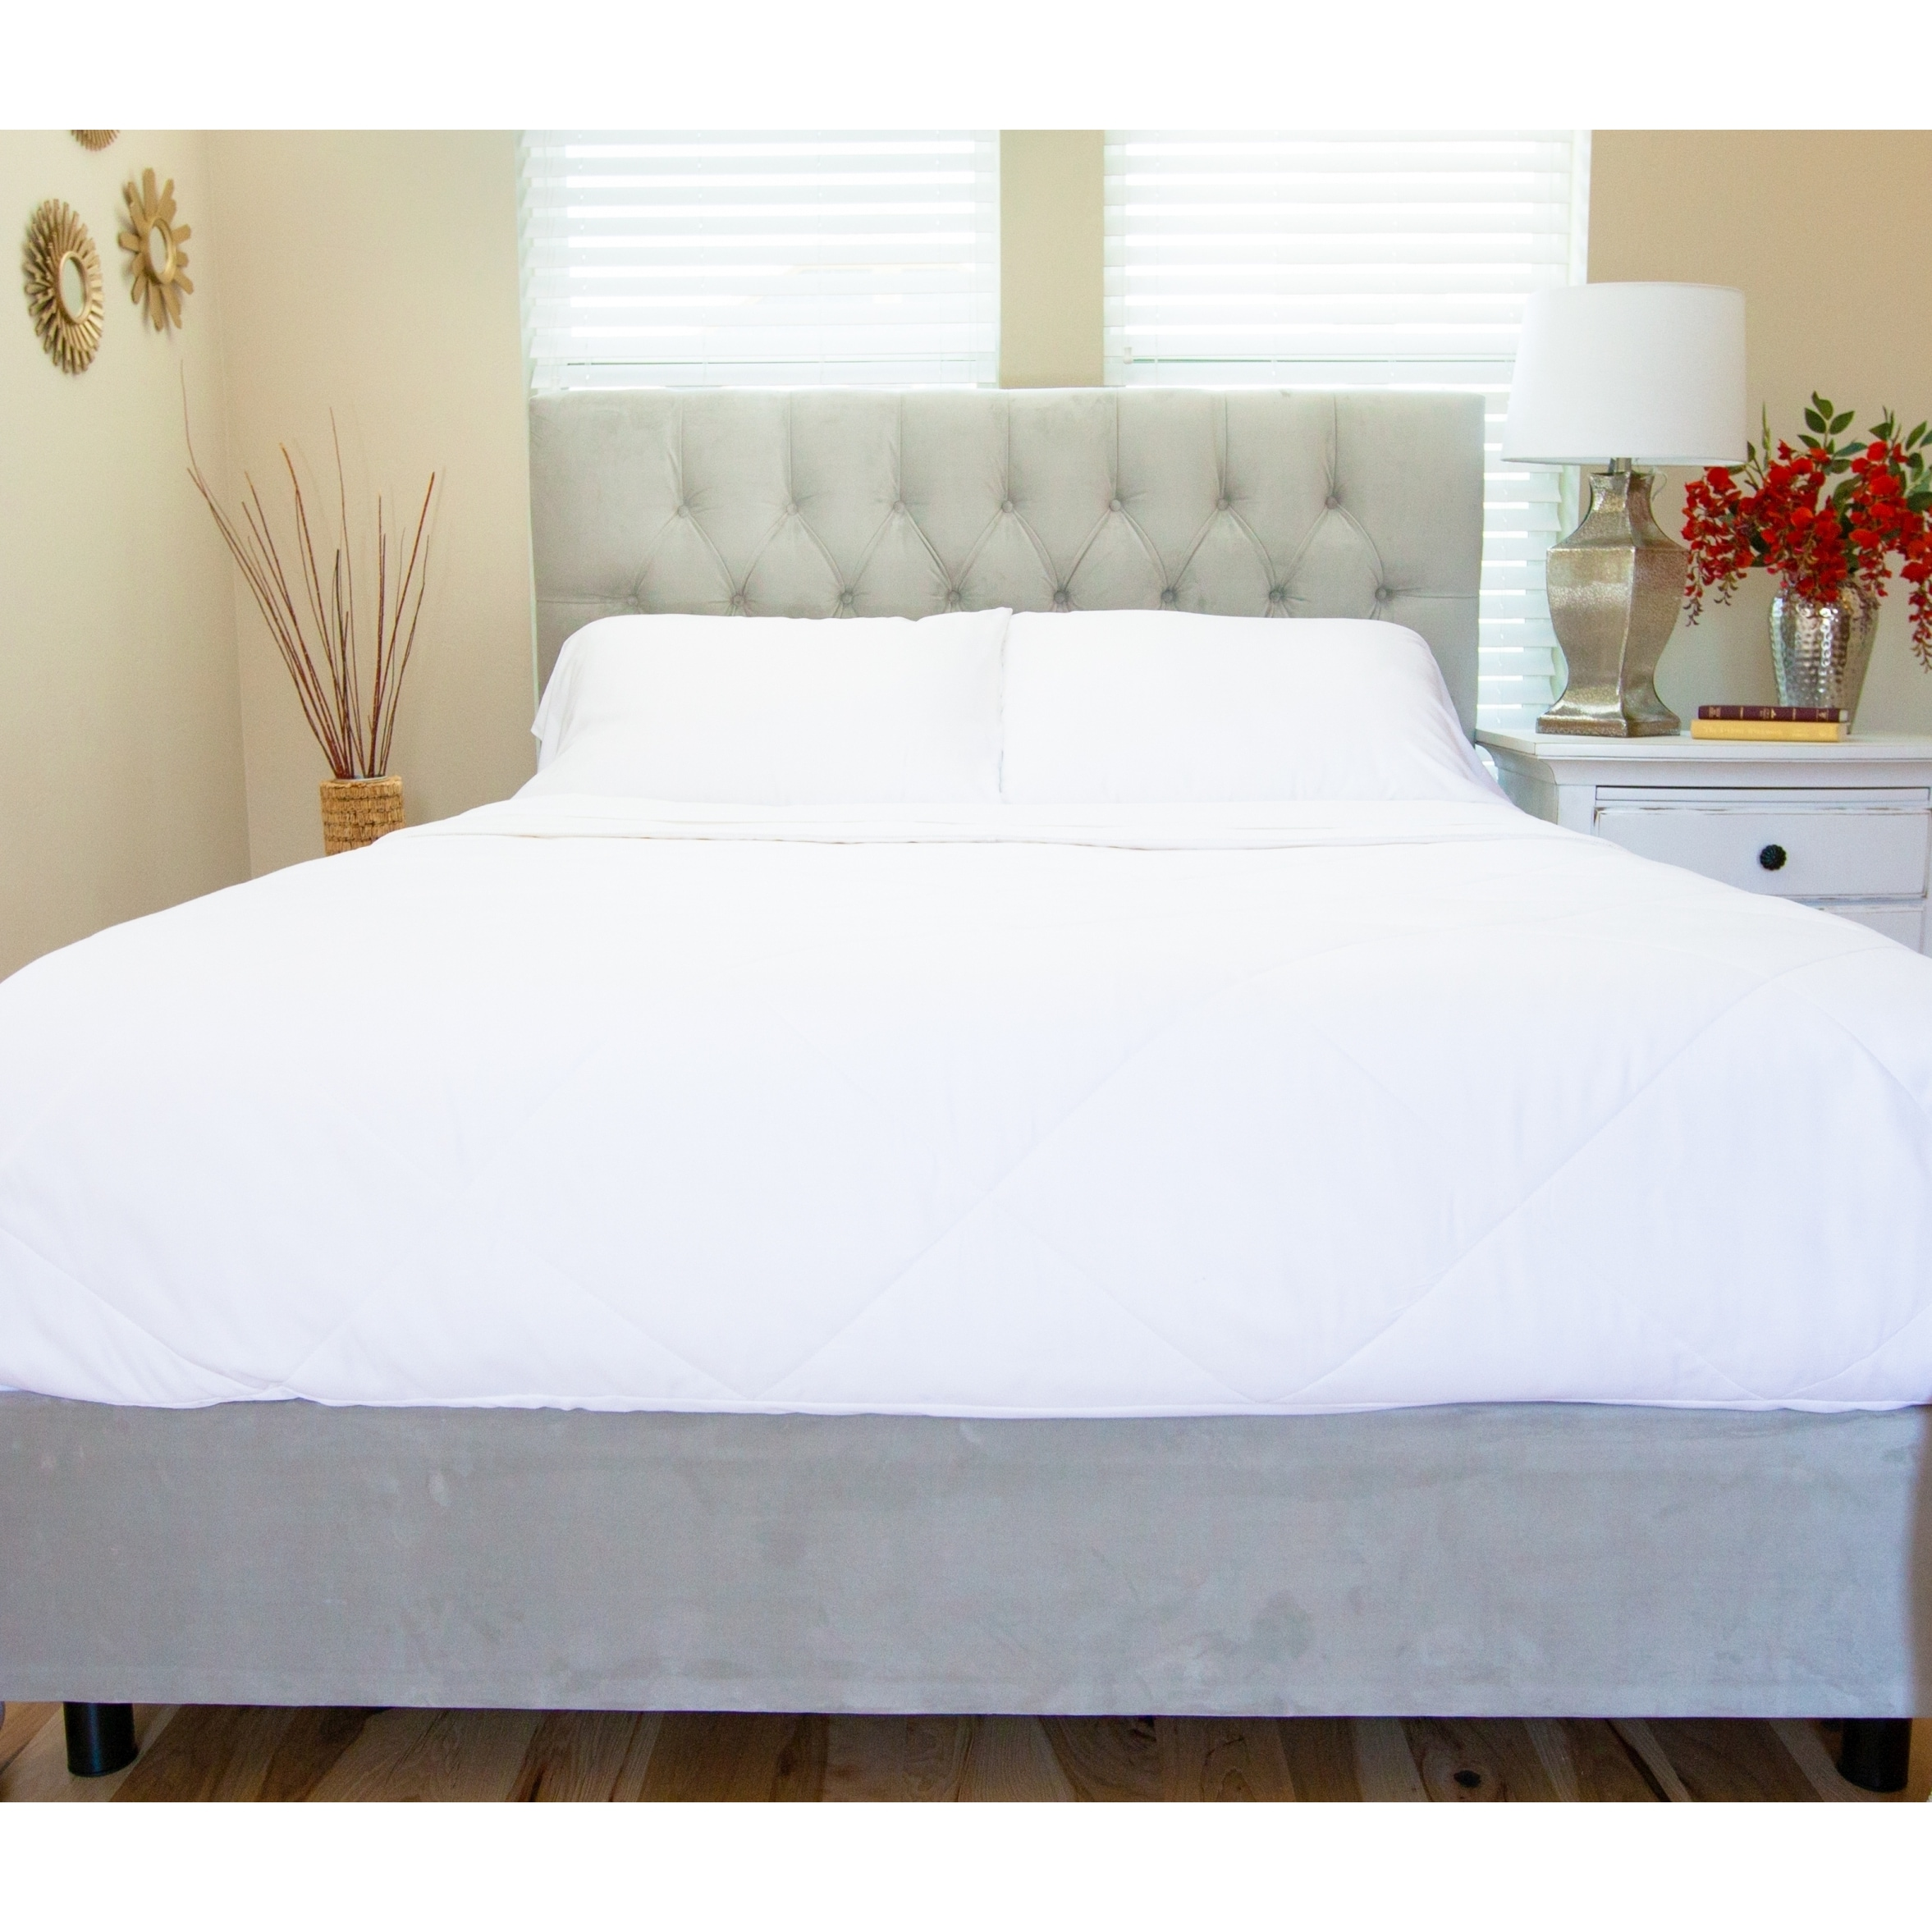 overstock shipping blanket mulberry filled damask cotton bath bedding silk stripe today free comforter product